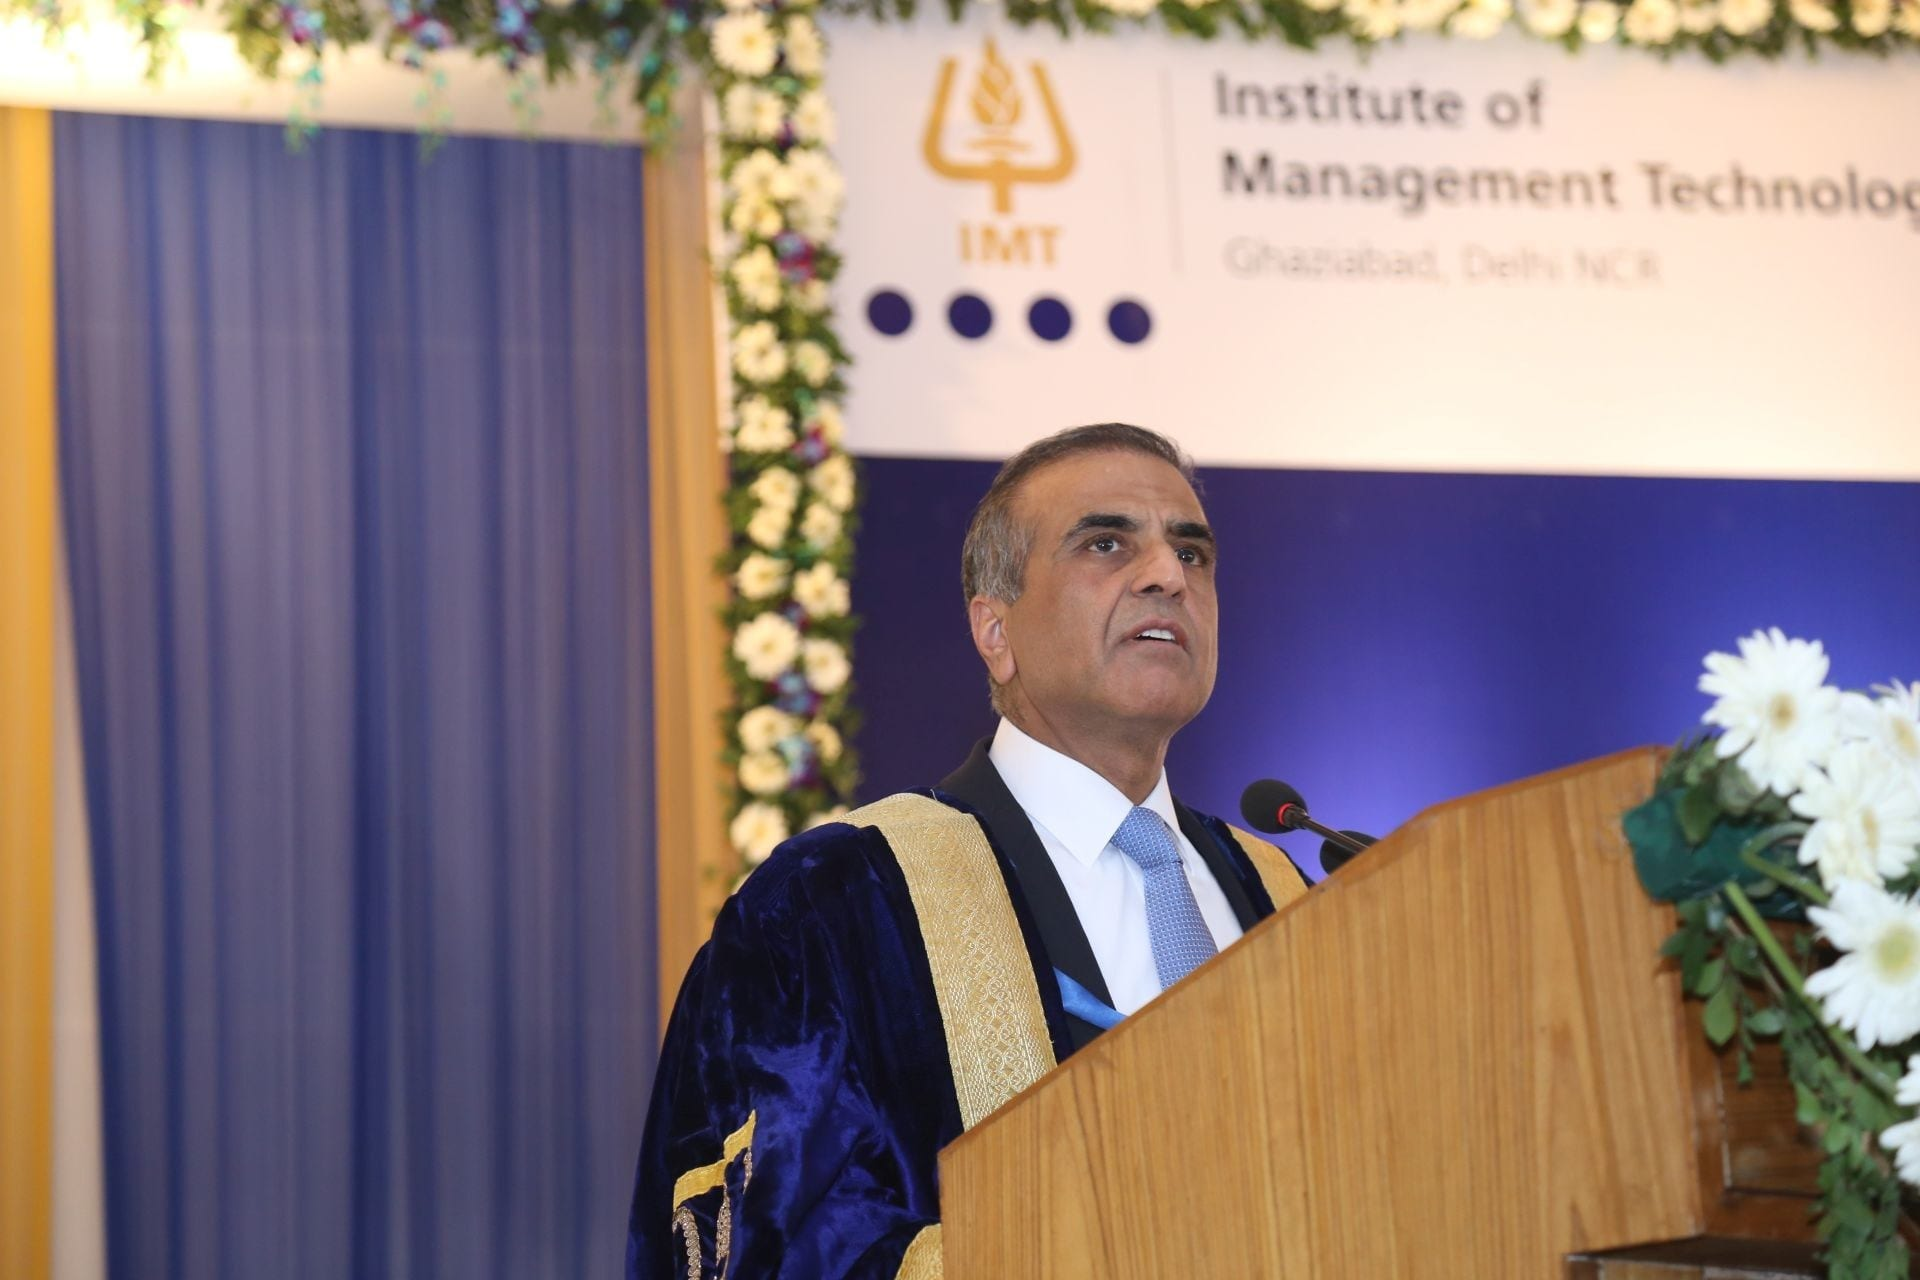 Youth graduating today must understand the global paradigm shift: Sunil Bharti Mittal at the IMT Convocation 2017